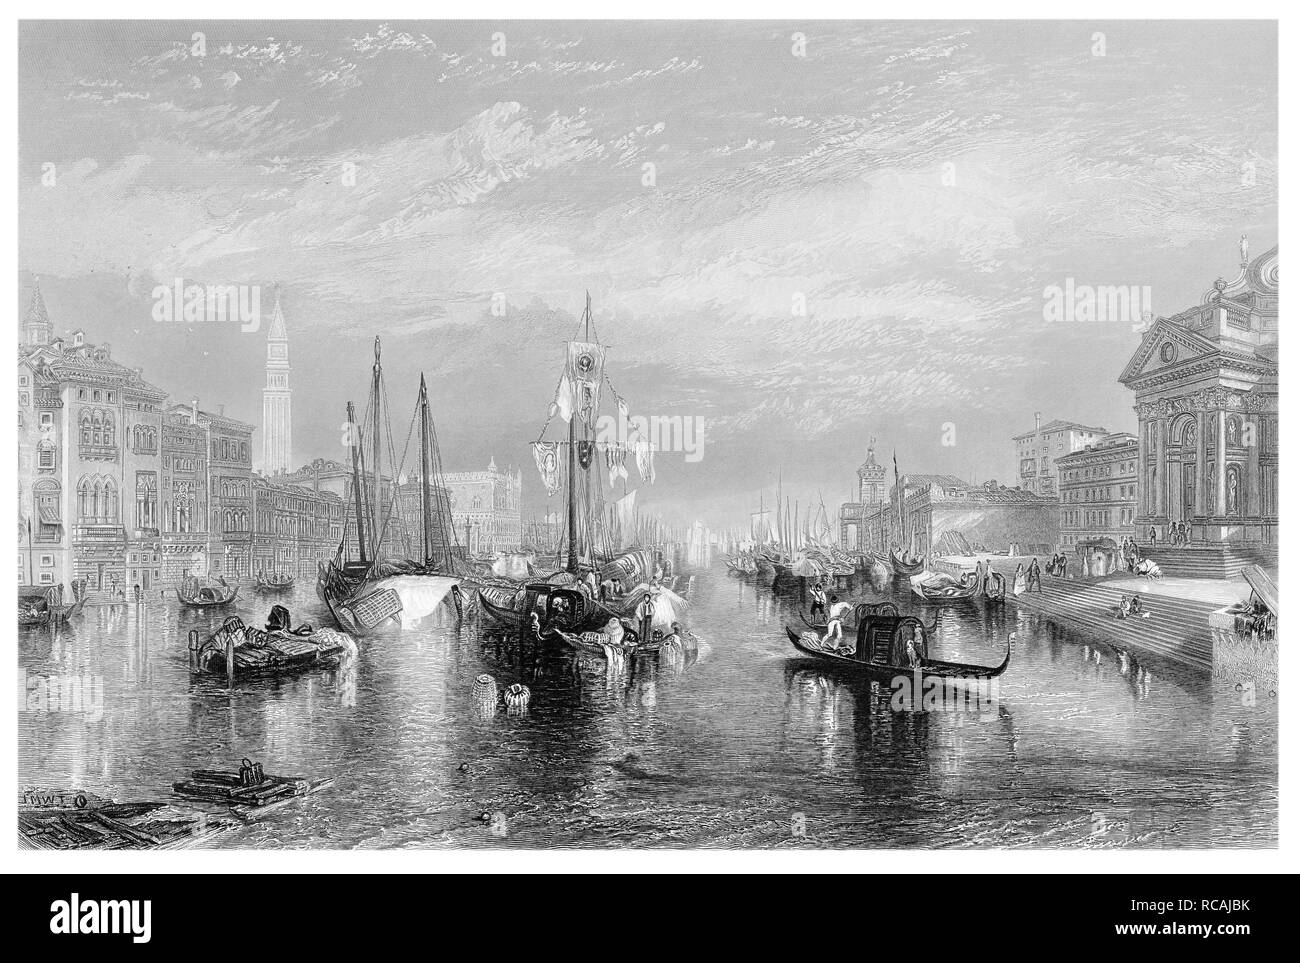 J.M.W Turner The Grand Canal Venice engraved by R Brandard - Stock Image